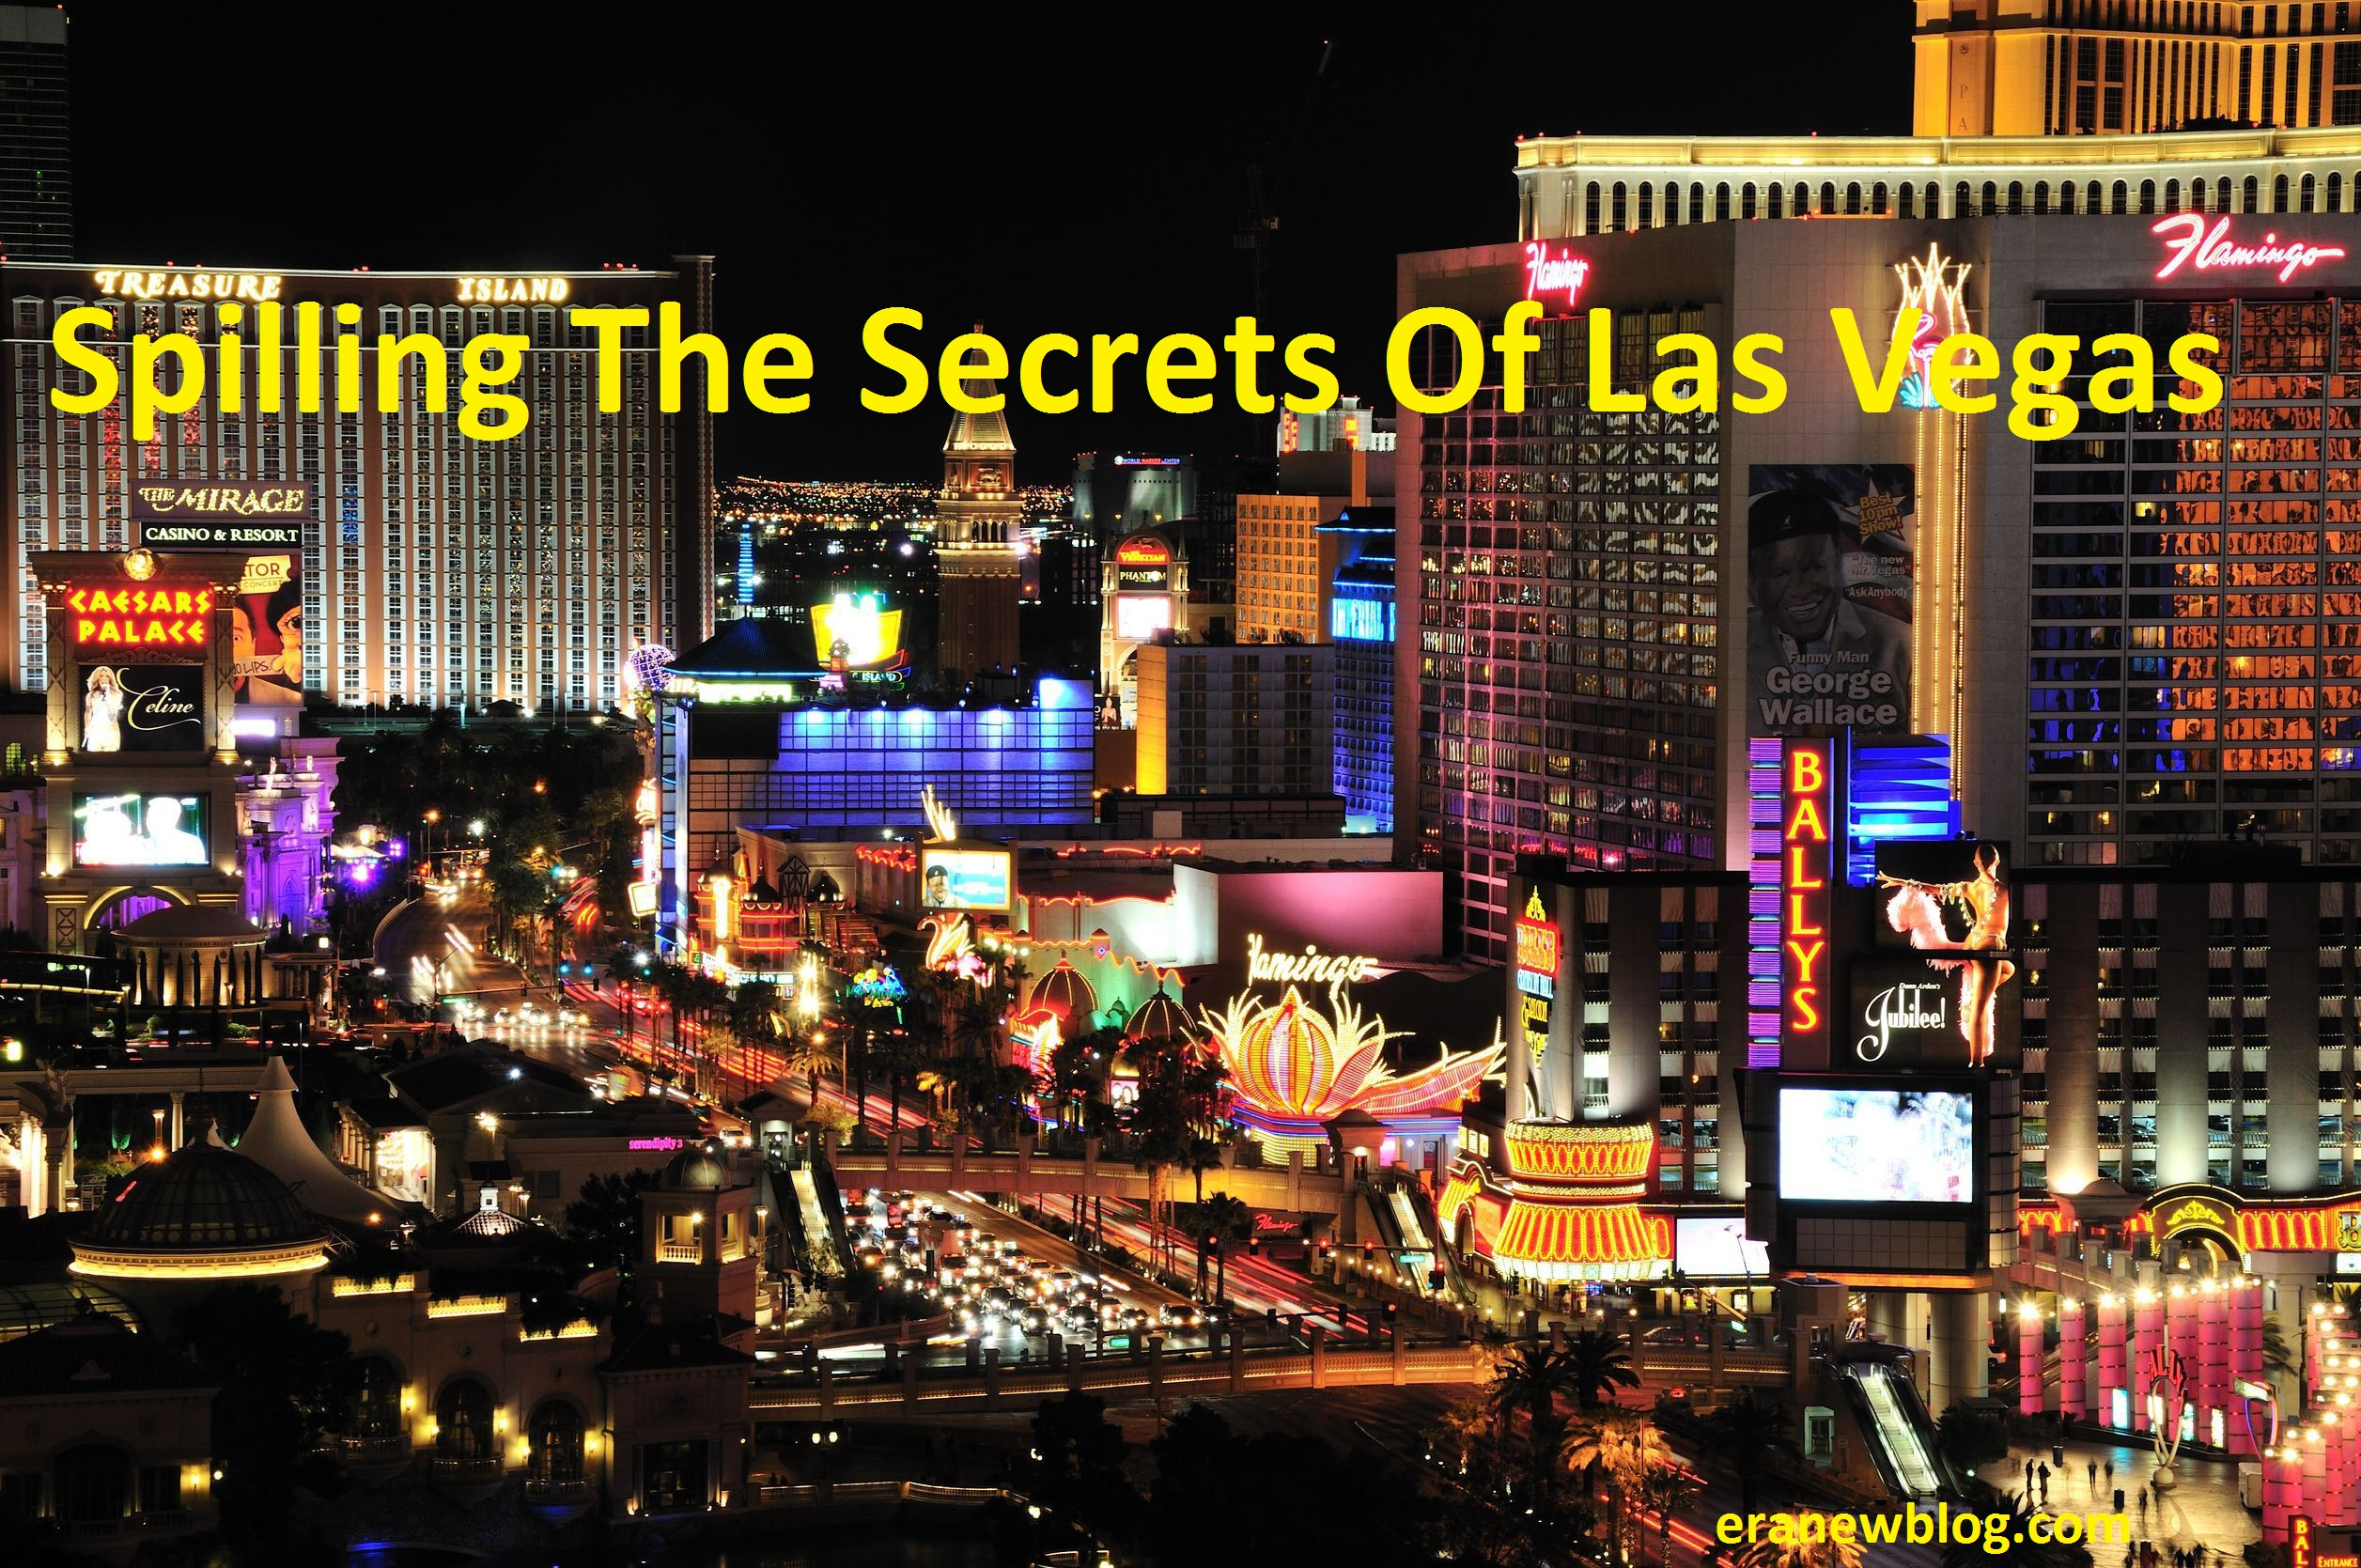 Spilling The Secrets Of Las Vegas